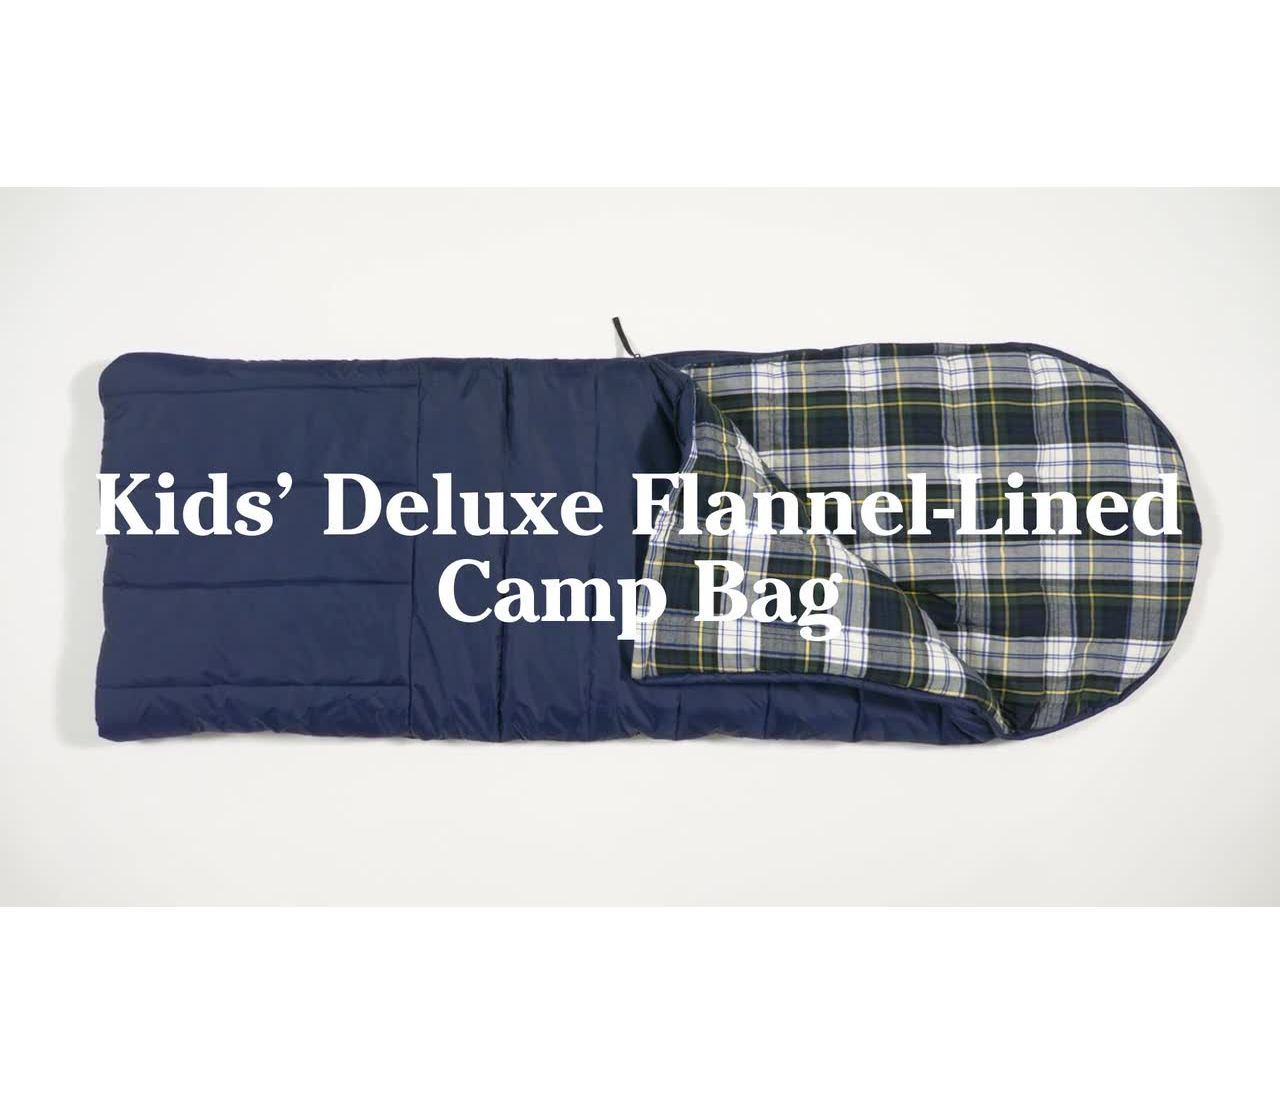 Video: Deluxe Flannel Camp Bag Kids